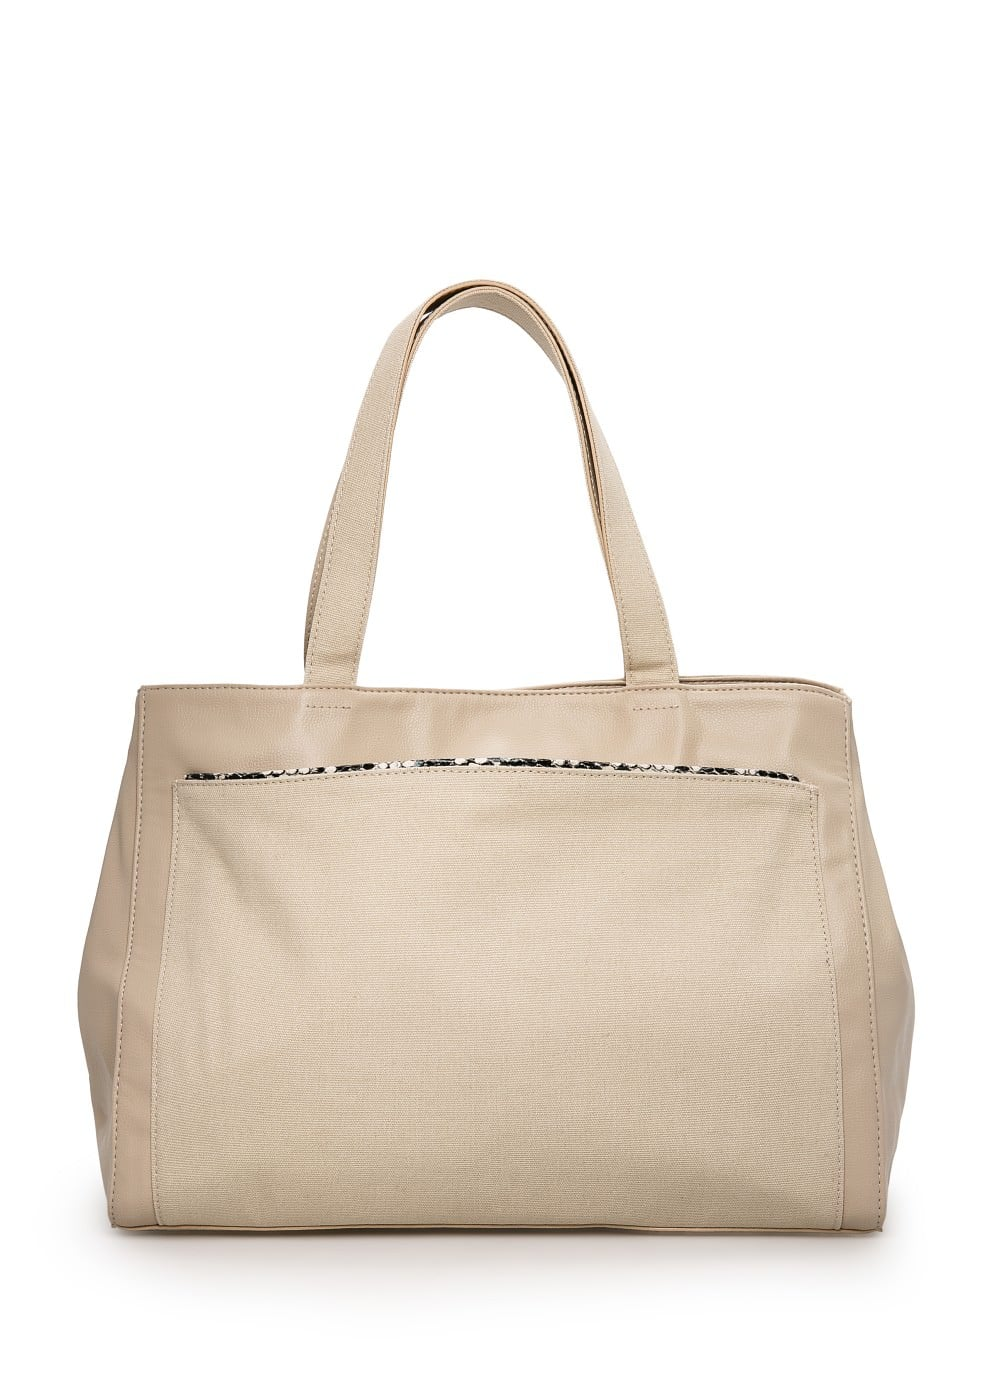 Trim shopper bag